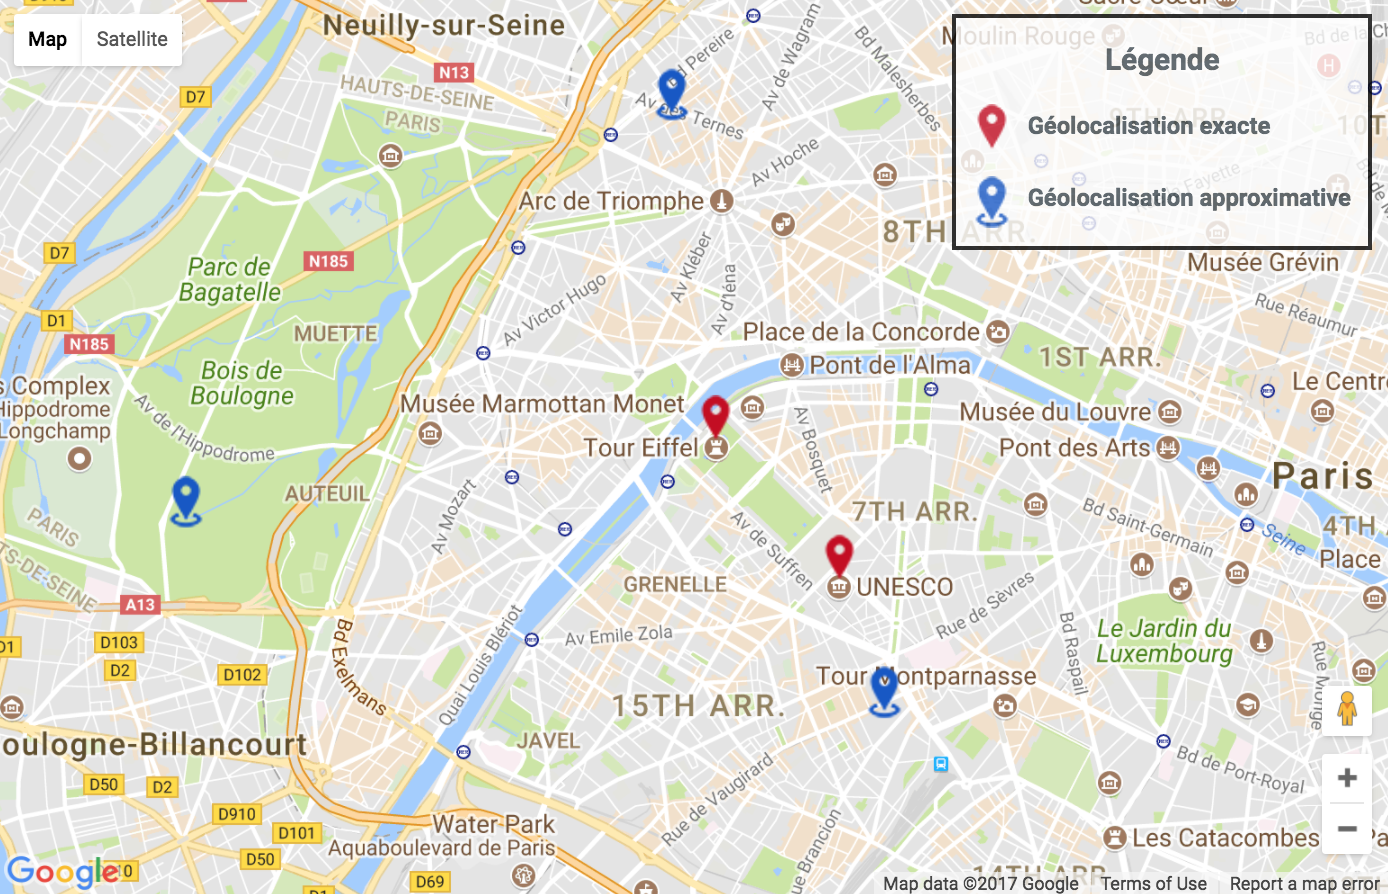 google map api Archives - The Des on book marker, google location pin, google earth, google maps logo, google maps 2014, google maps truck, google maps legend, google green, google location icon, google maps icon, google maps home location,